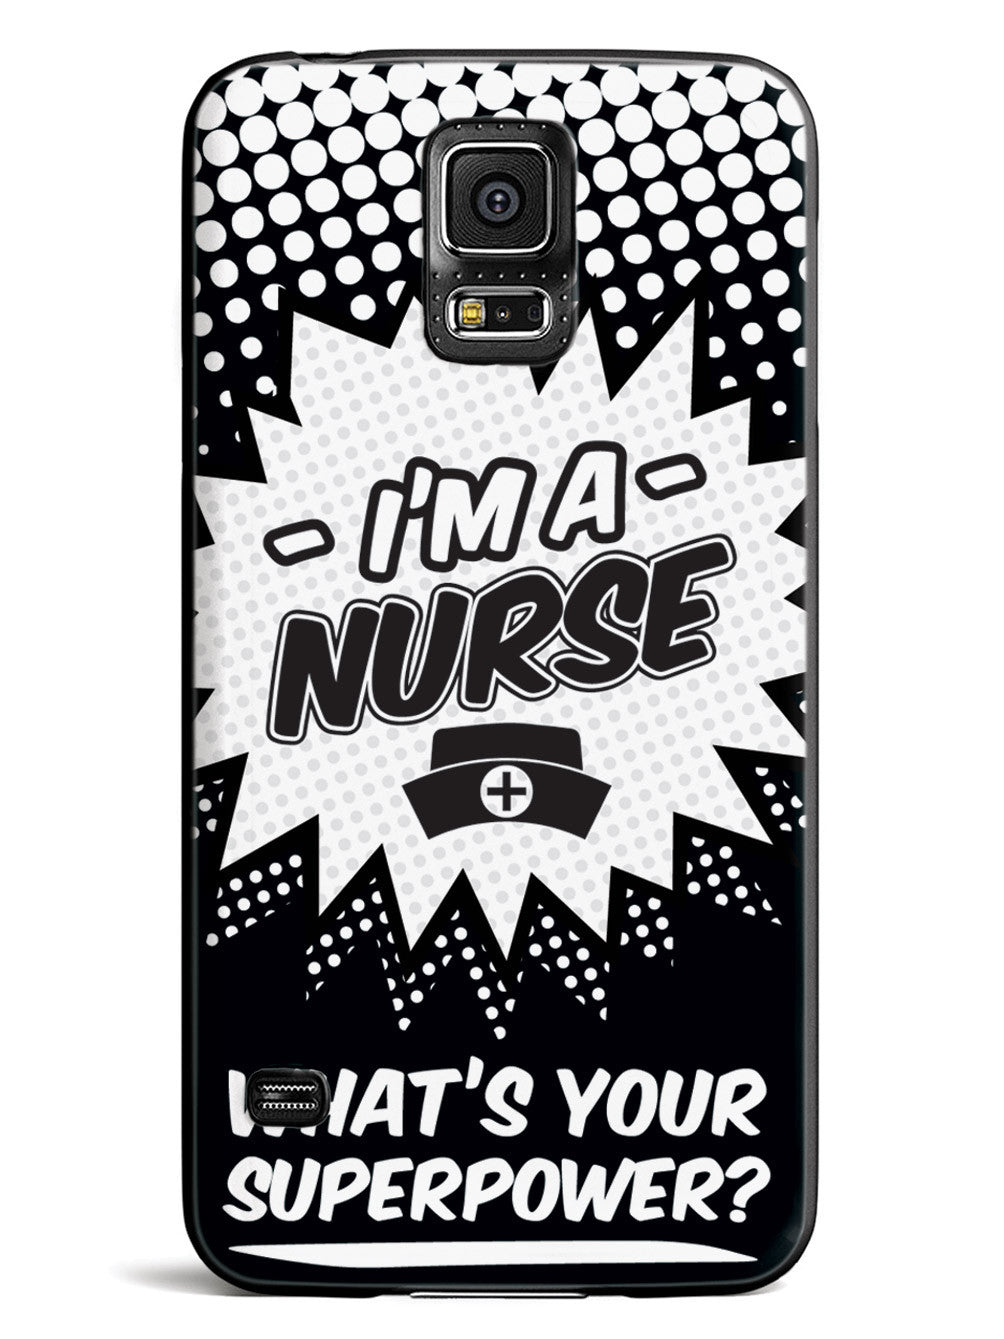 Nurse - What's Your Superpower?  Case